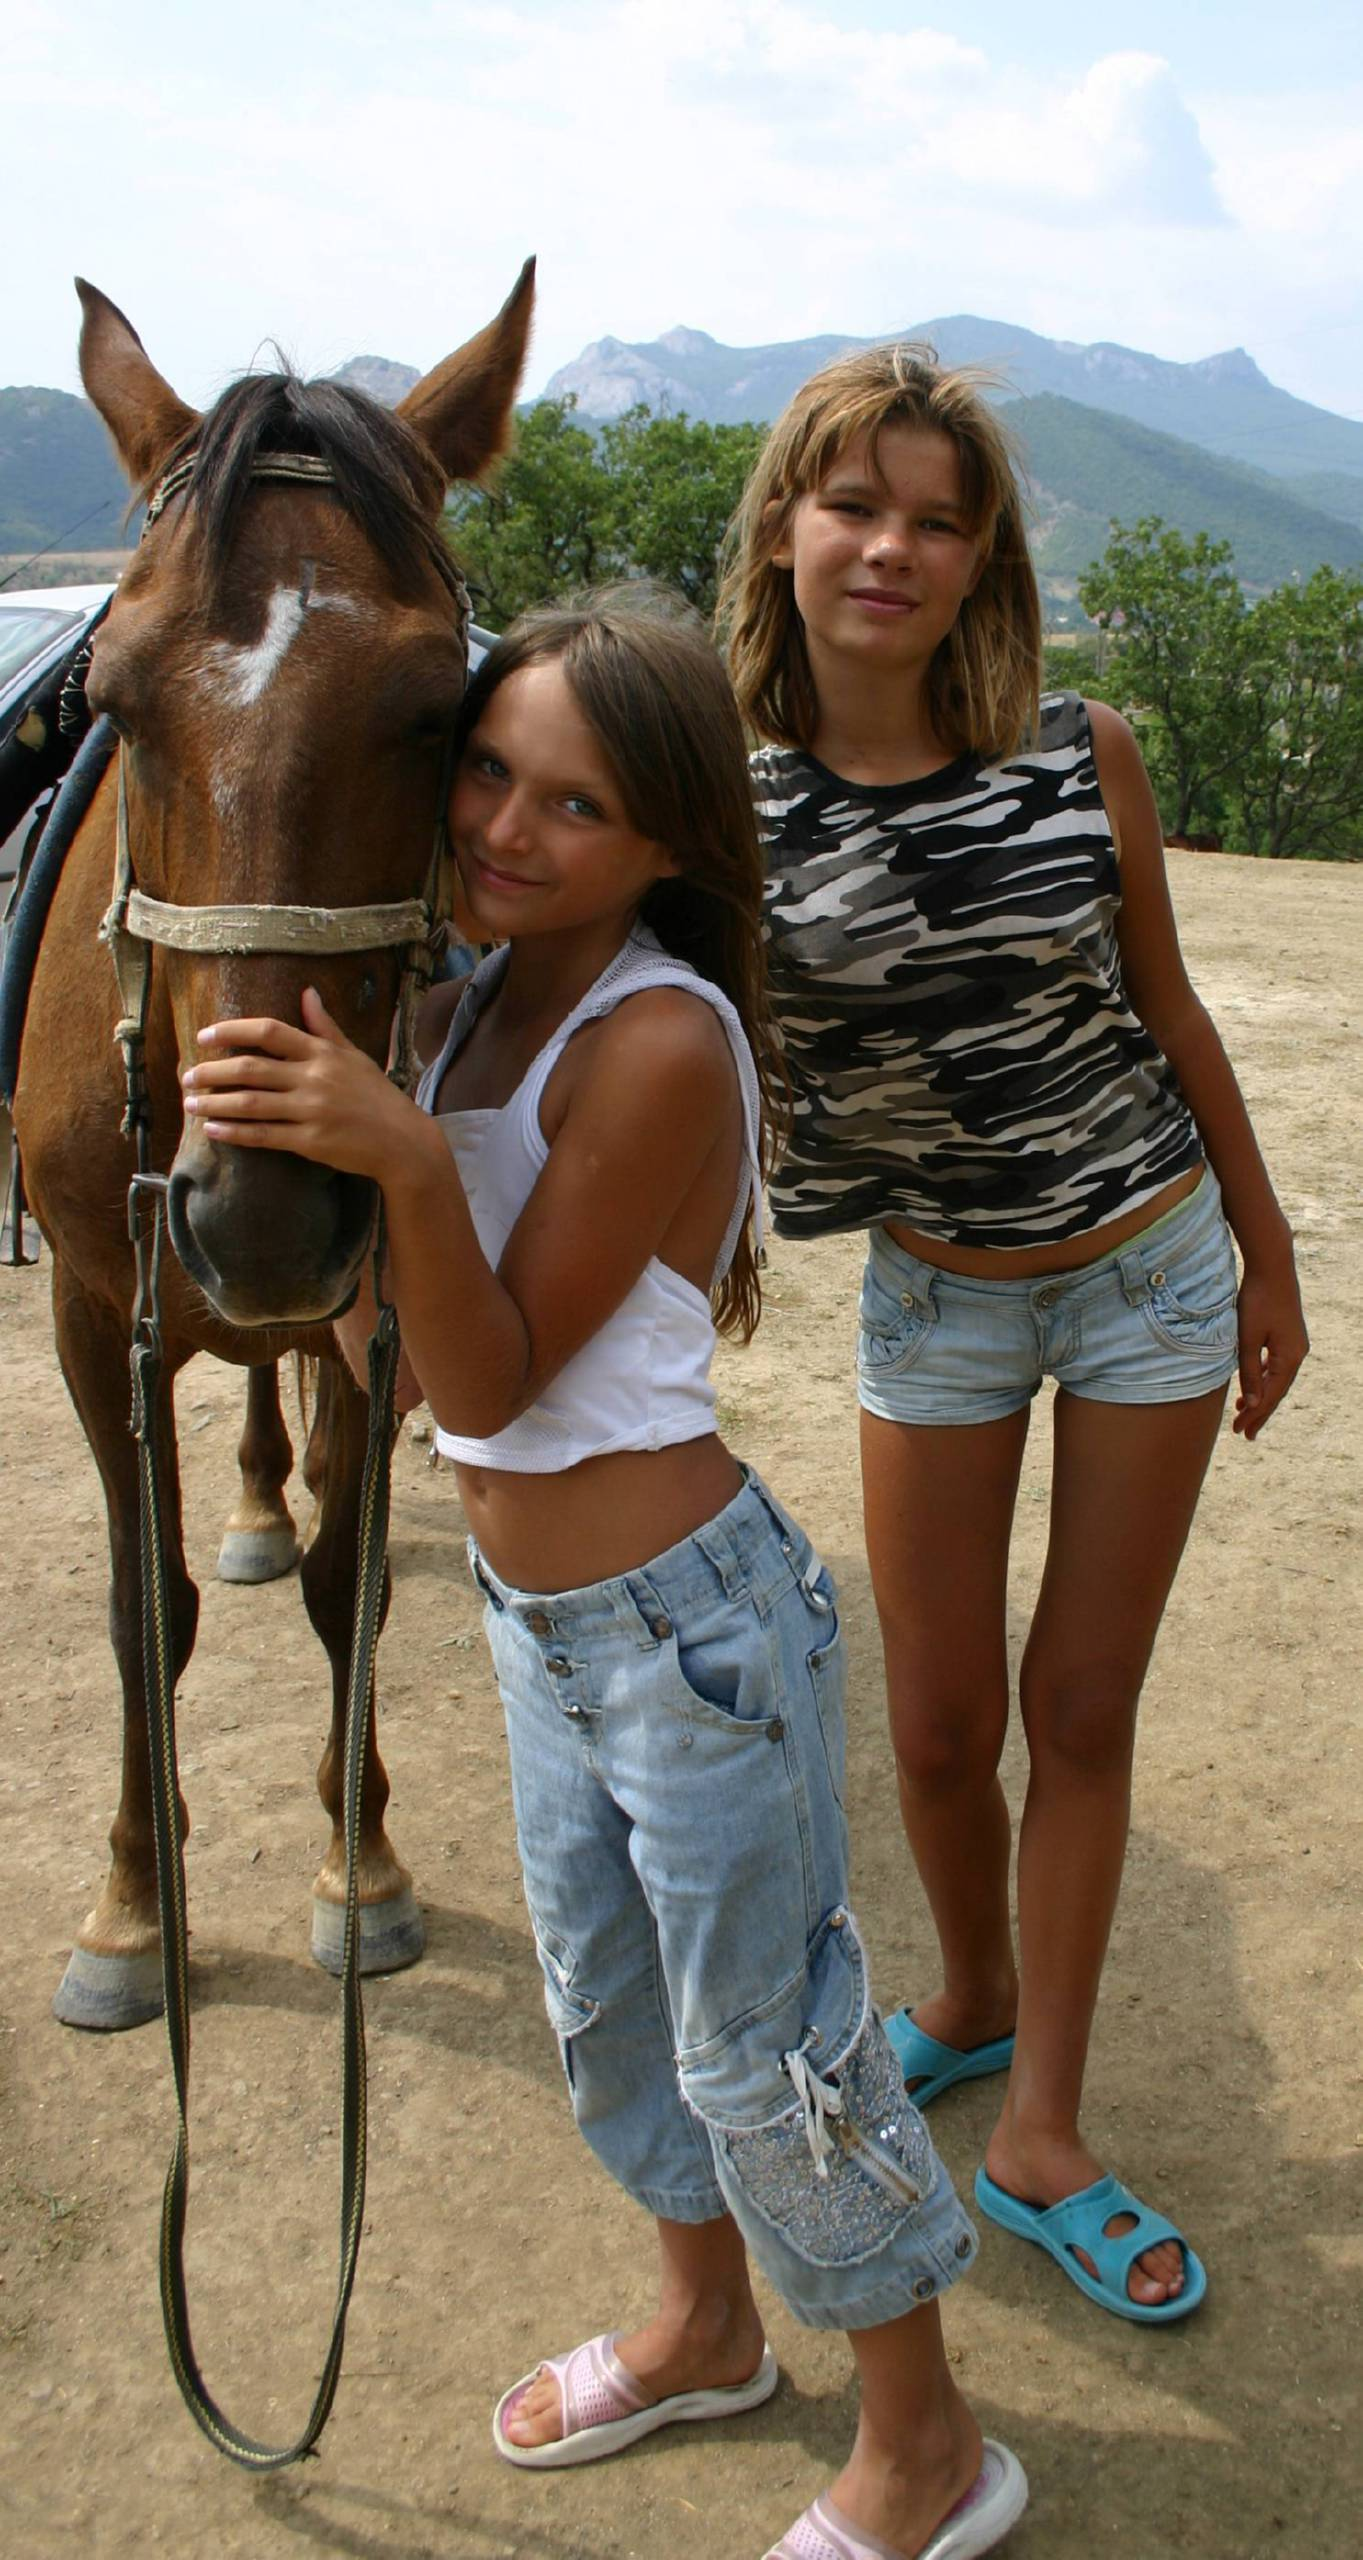 Nudist Gallery Horses Close and Personal - 2